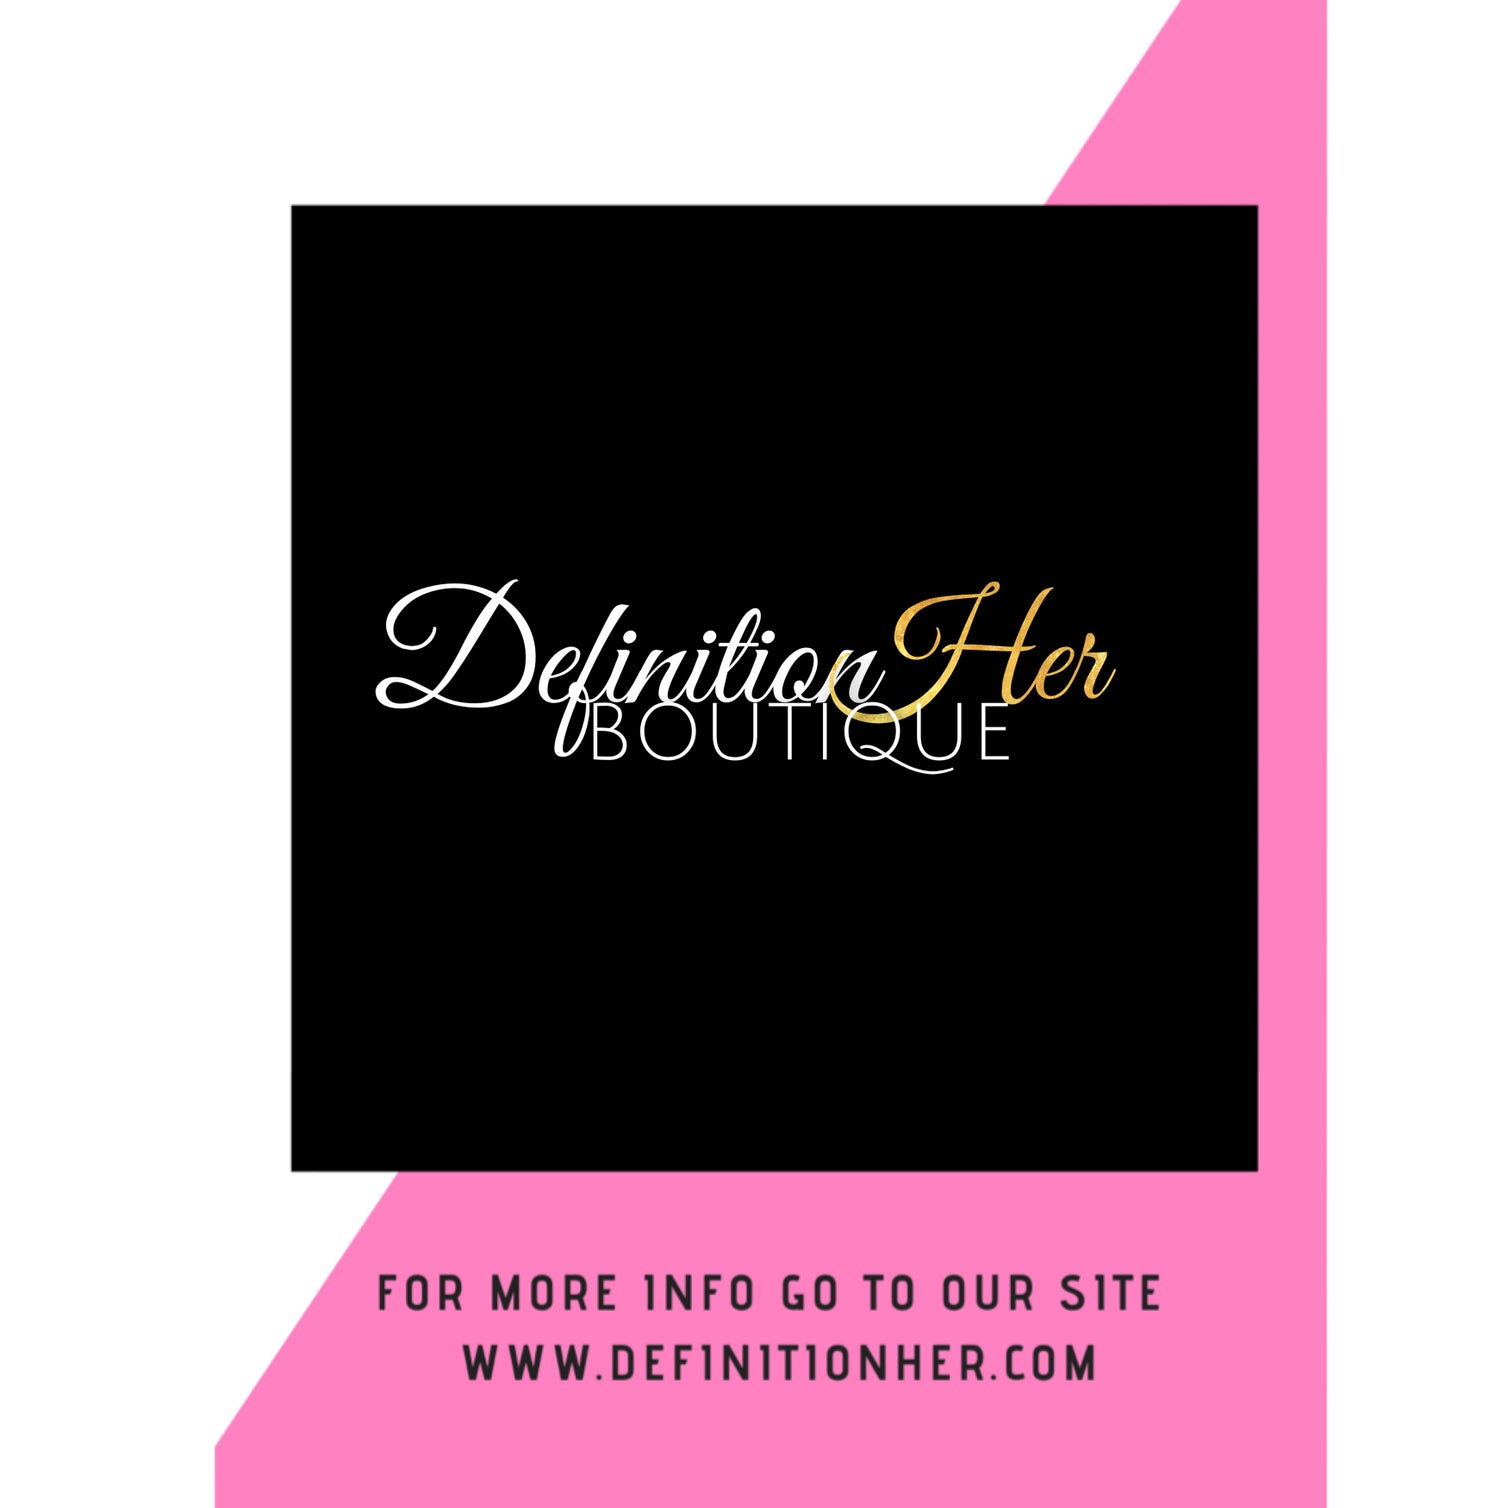 DEFINITIONHER BOUTIQUE